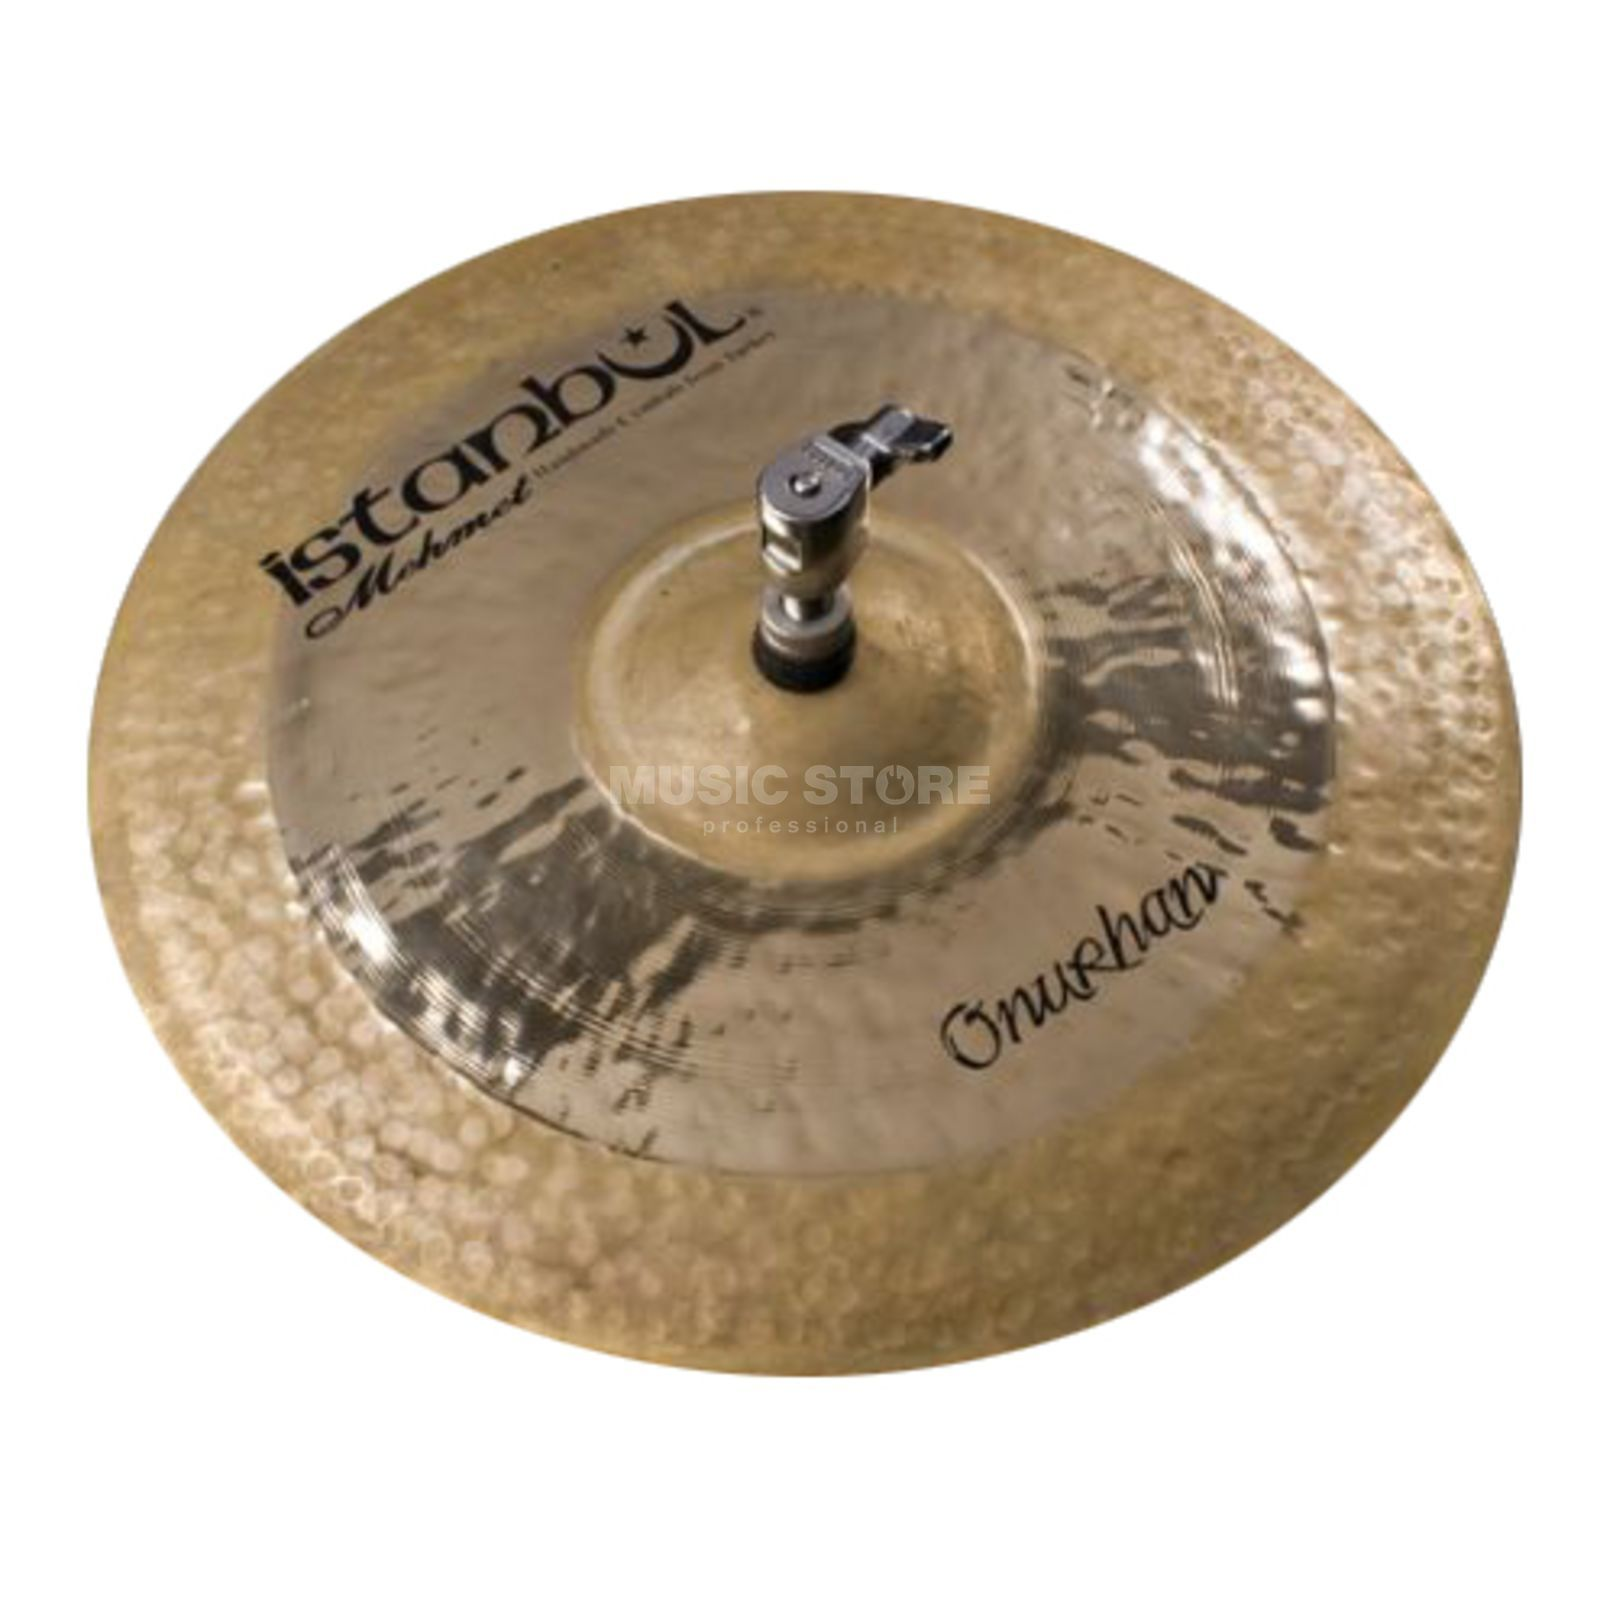 "Istanbul Onurhan HiHat 14"", OH-HH15 Product Image"